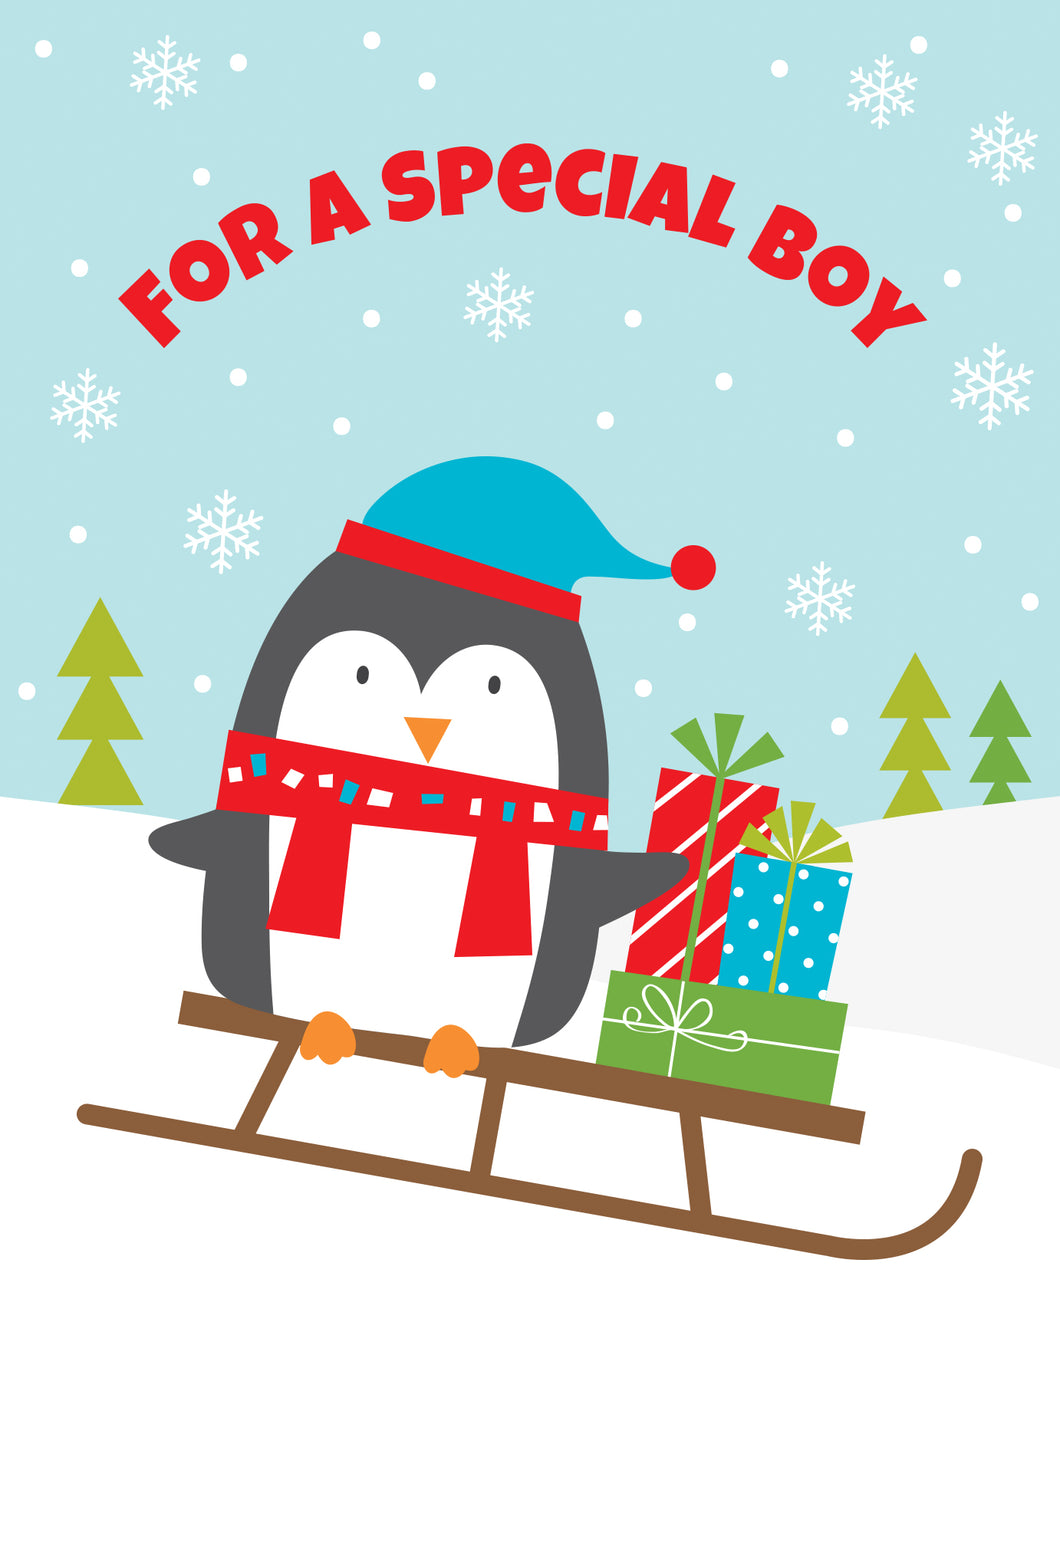 For a special boy - Christmas Card - Special Boy